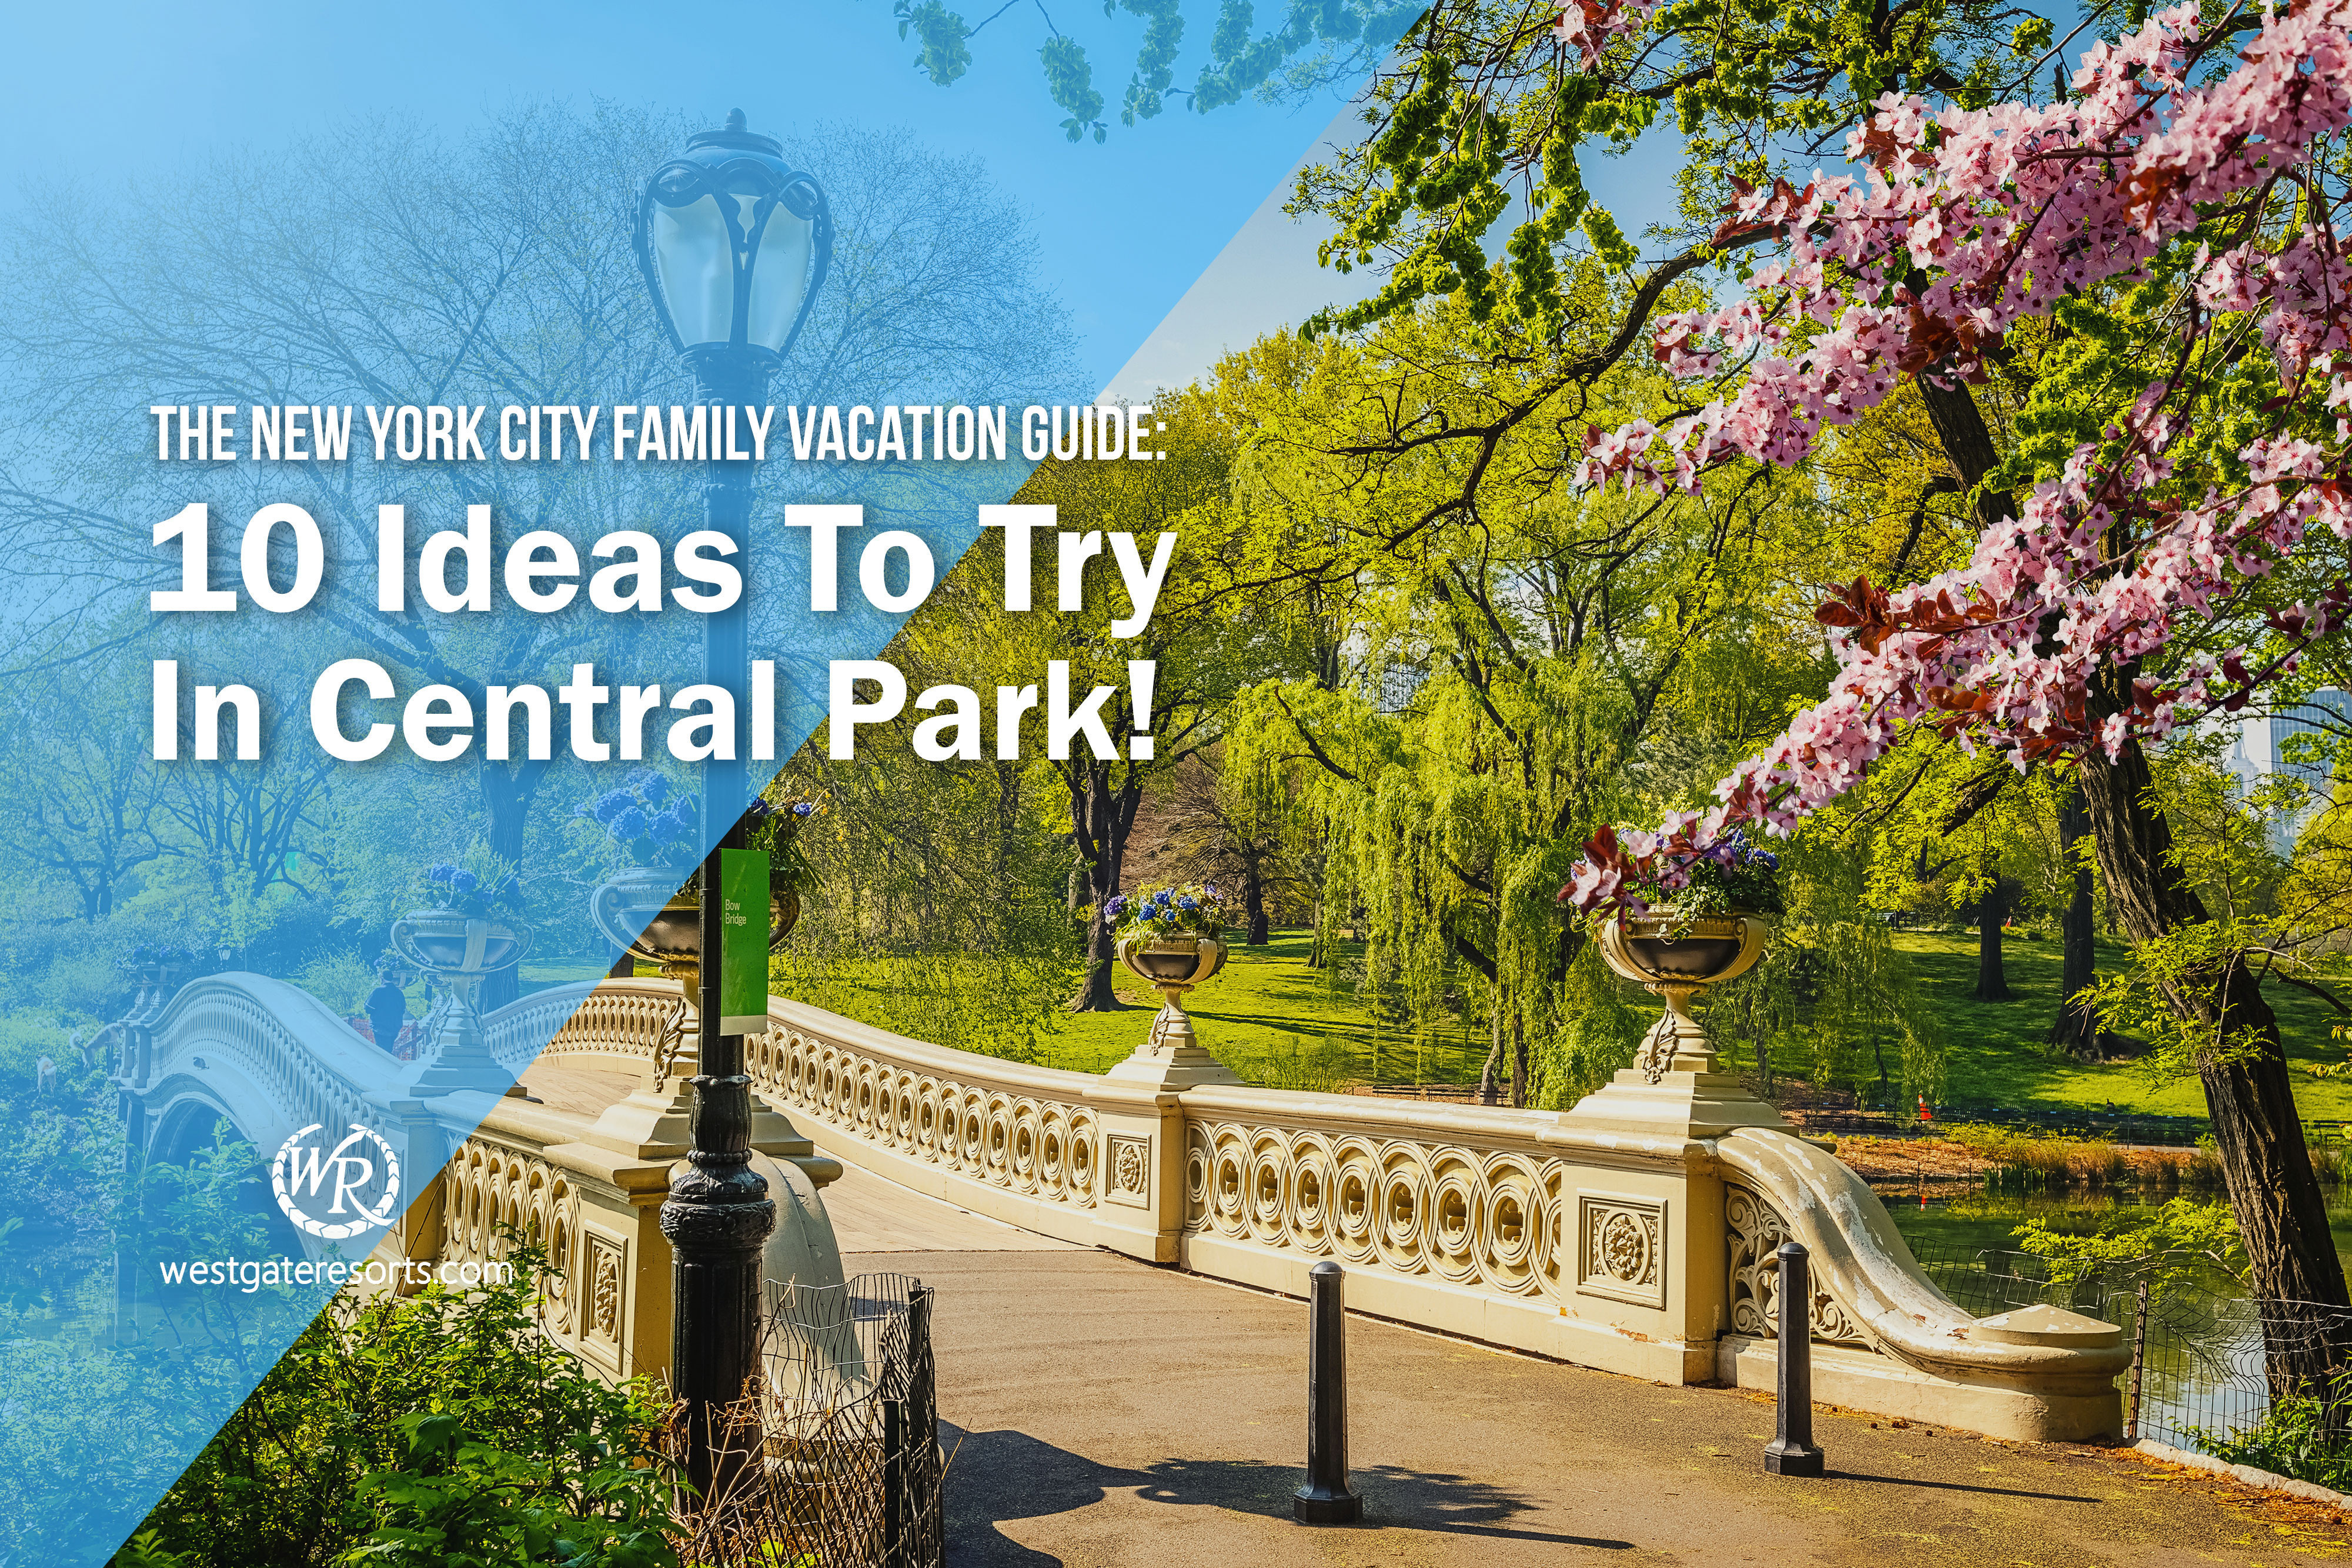 The New York City Family Vacation Guide: 10 Ideas To Try In Central Park!